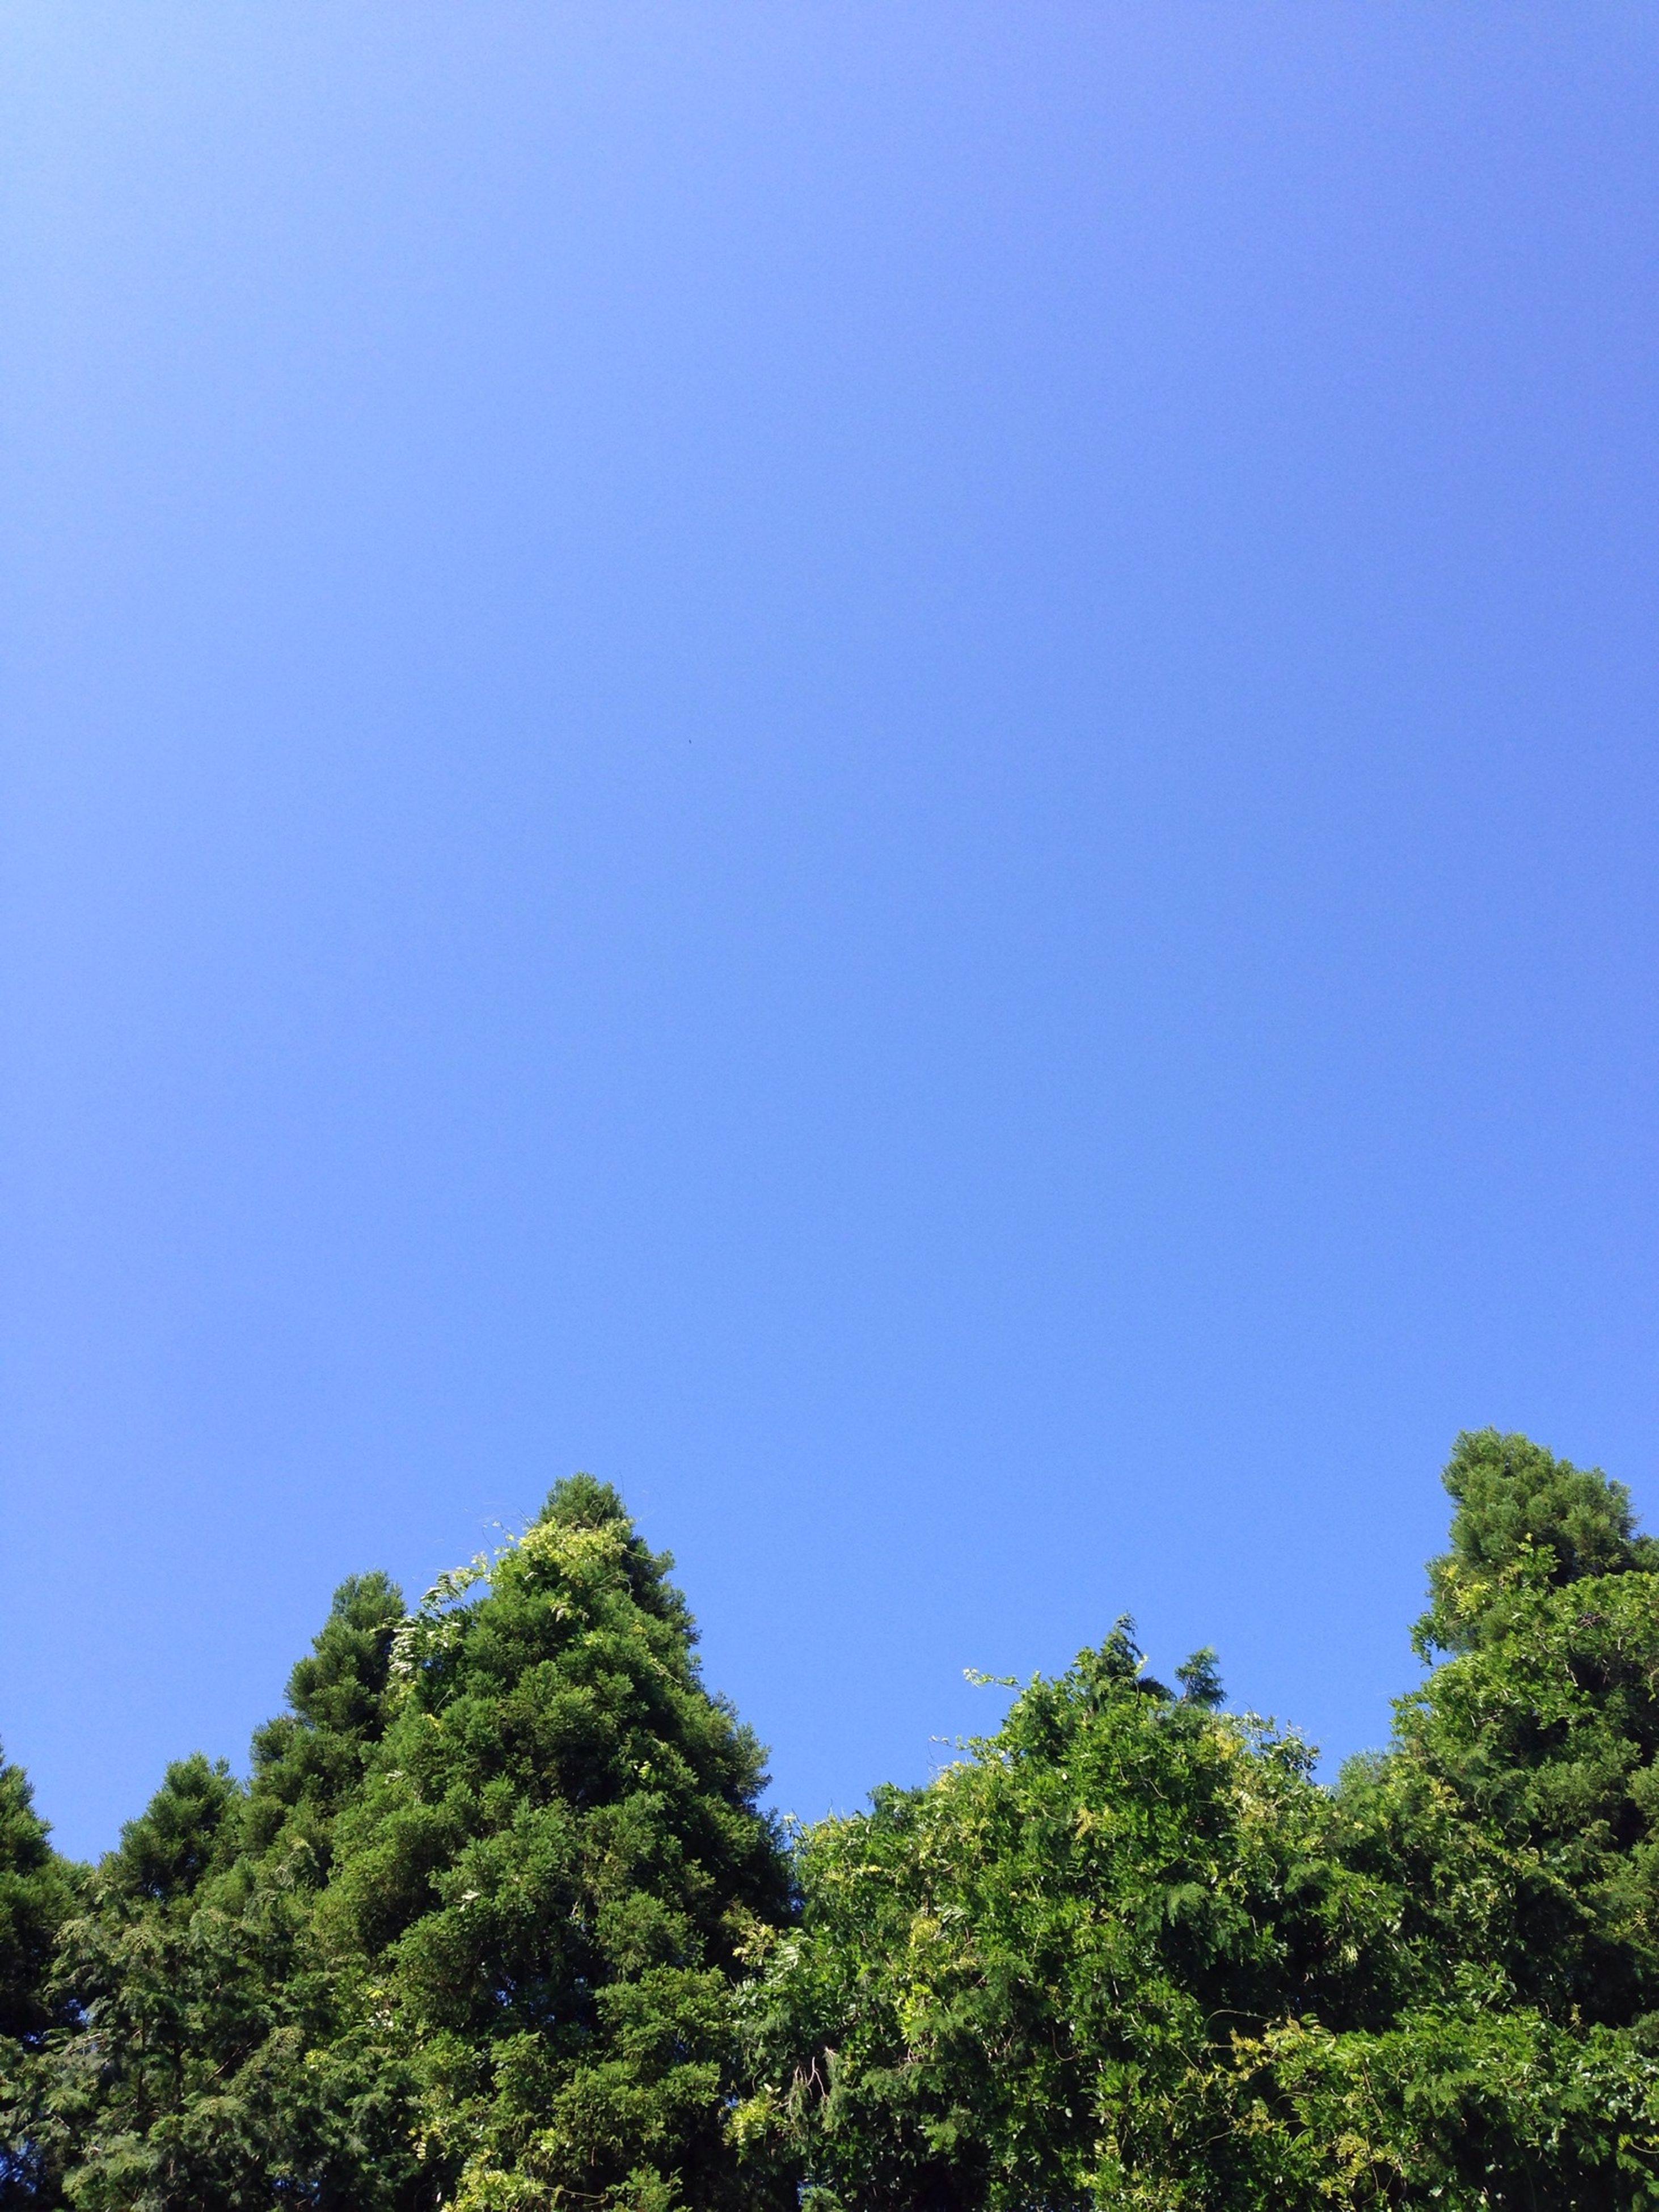 clear sky, copy space, blue, tree, low angle view, tranquility, growth, beauty in nature, tranquil scene, nature, scenics, green color, lush foliage, green, day, idyllic, outdoors, no people, forest, non-urban scene